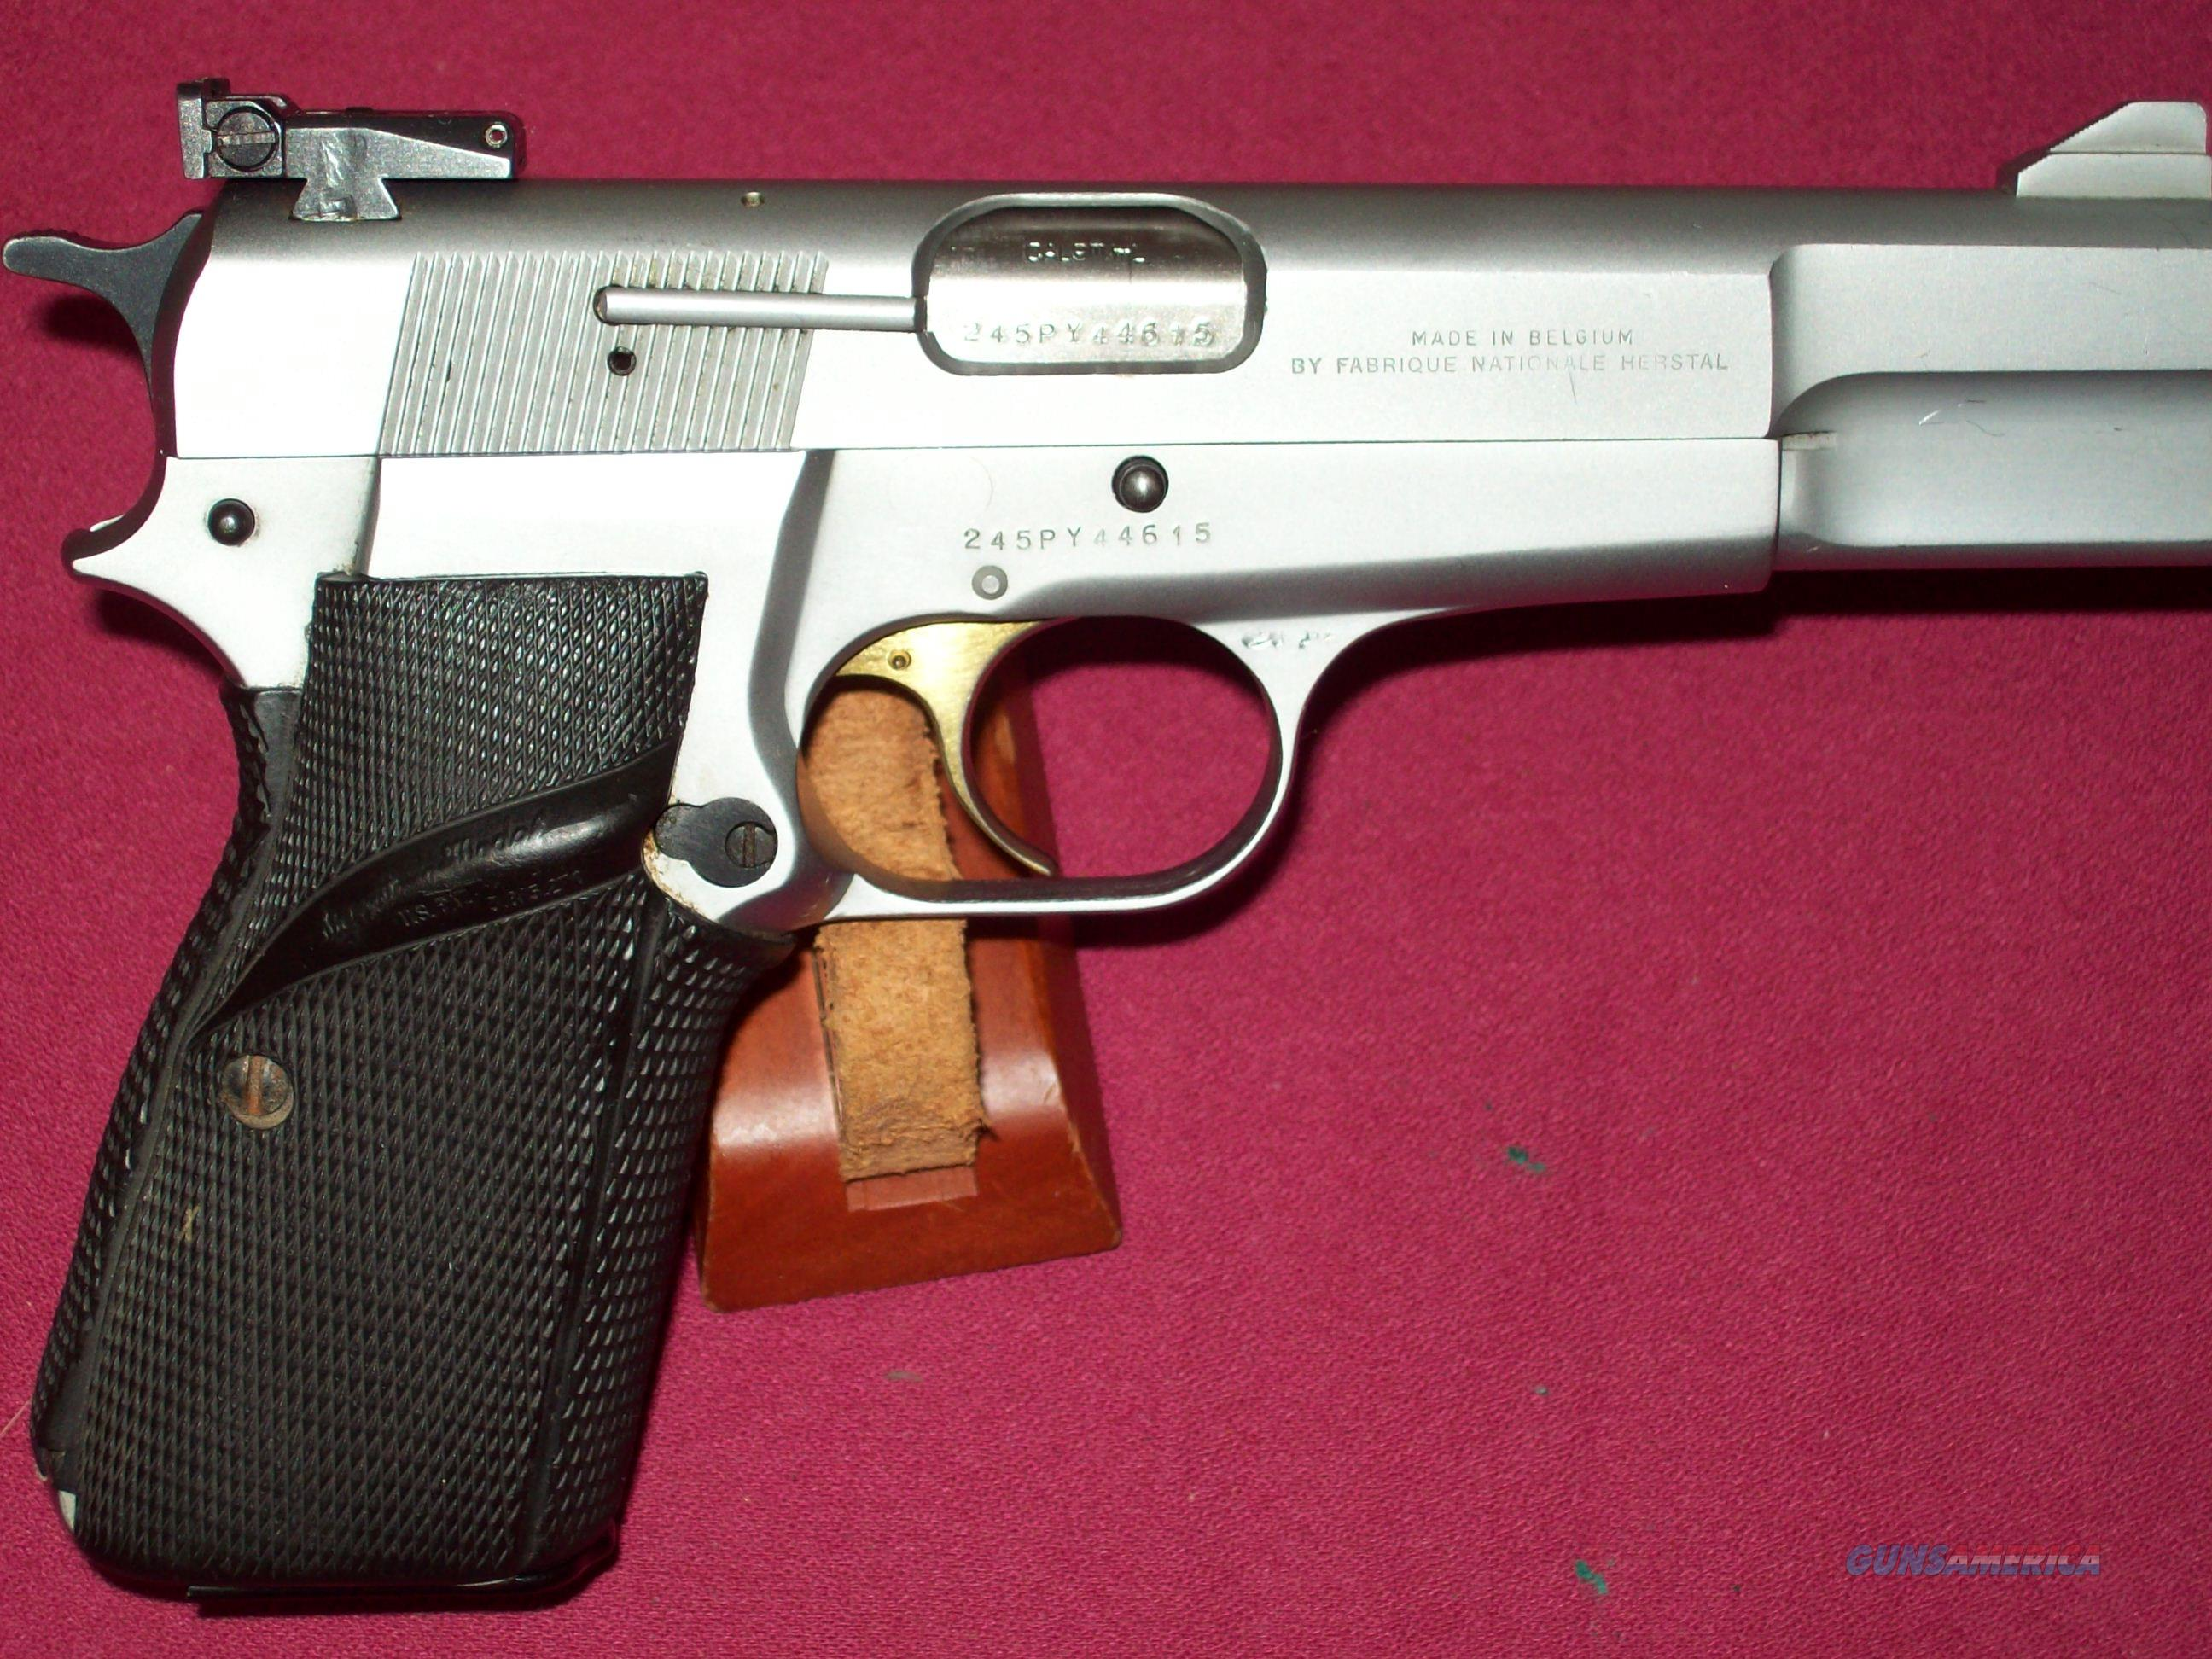 Browning Hi-Power 9mm Nickel / Silver Chrome finish Belgian made  Guns > Pistols > Browning Pistols > Hi Power